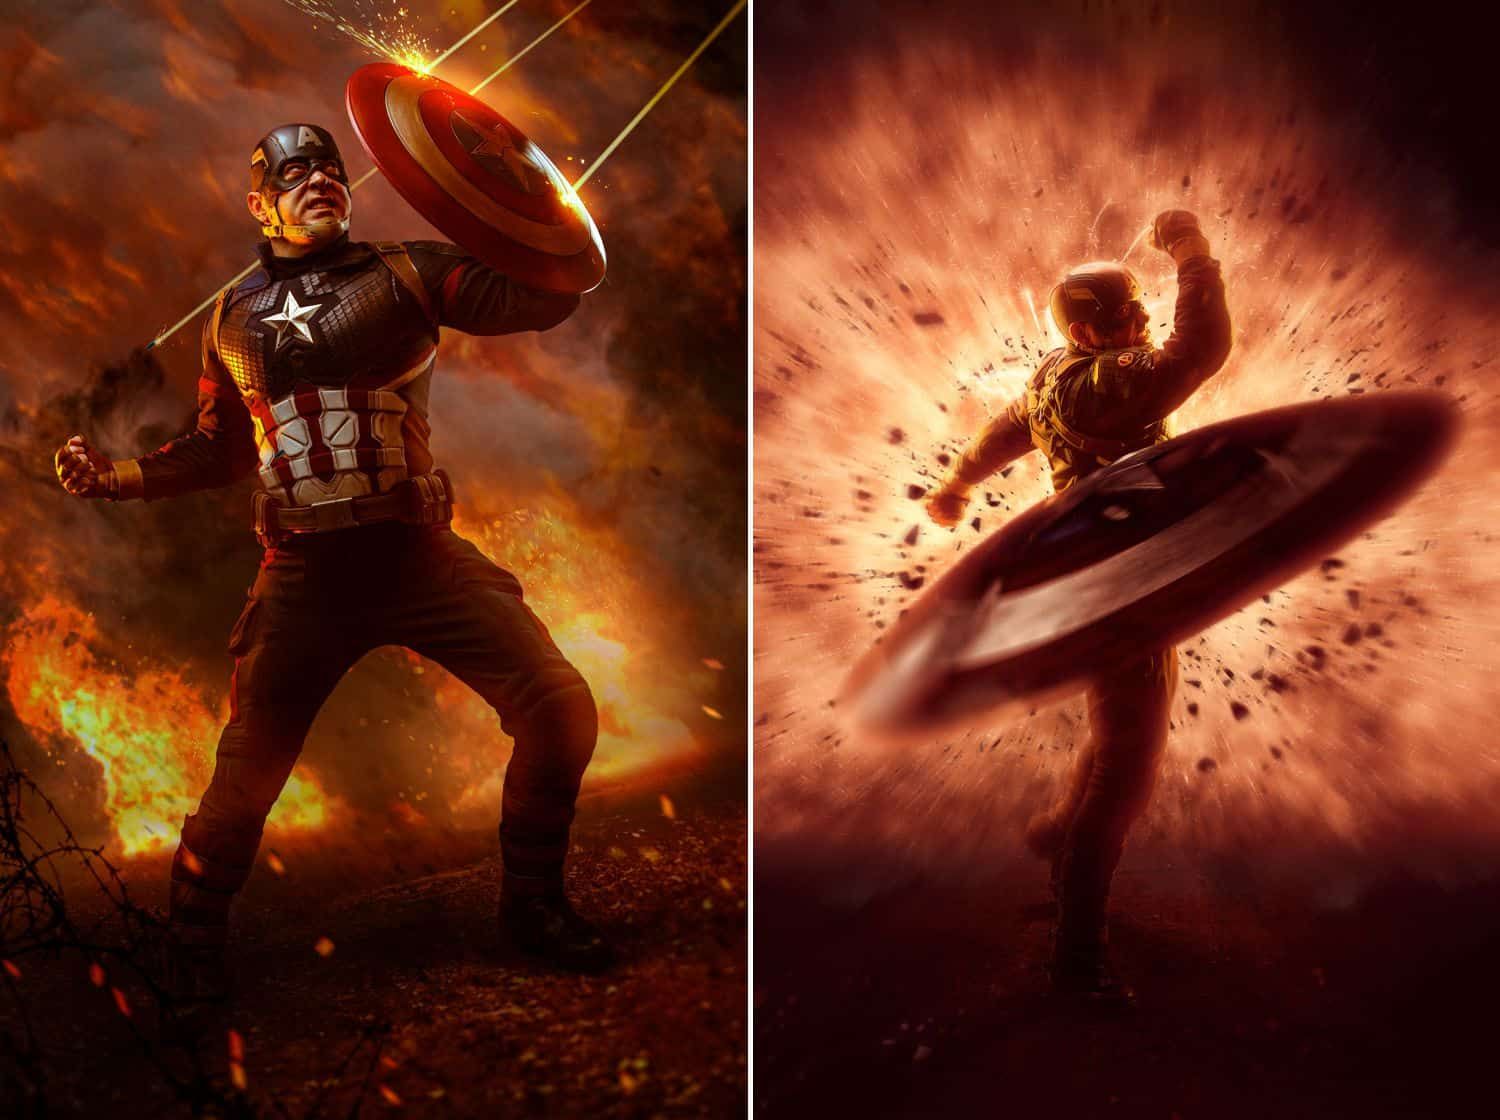 Freedom to create: Captain America cosplay with shield; digital art by Ryan Sims